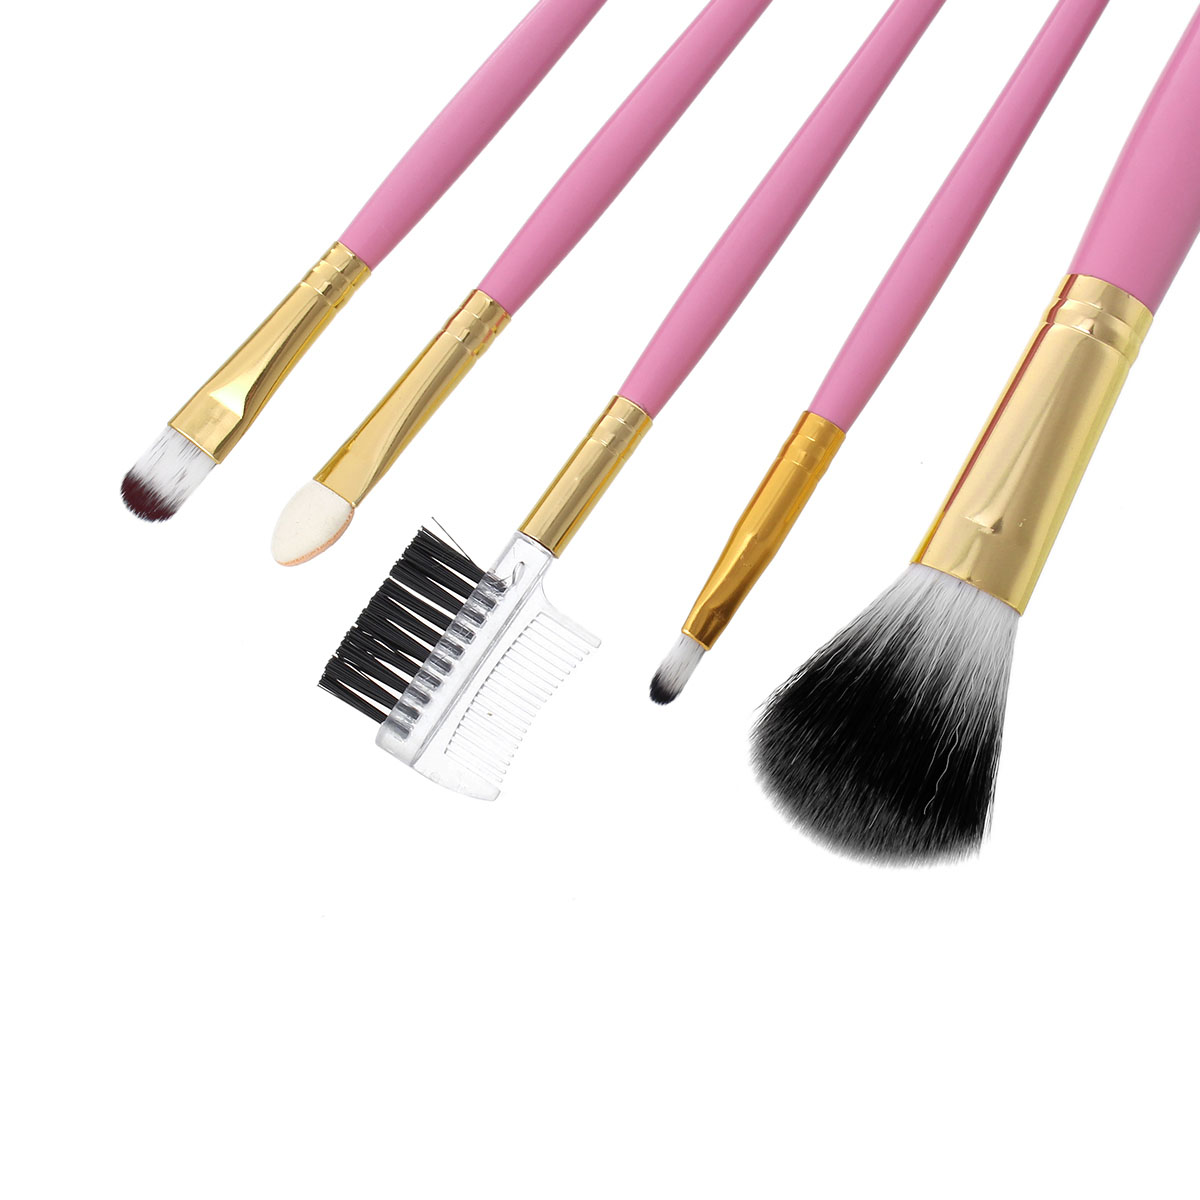 Sparklingdesign Makeup Brushes Cosmetic Tools Pink